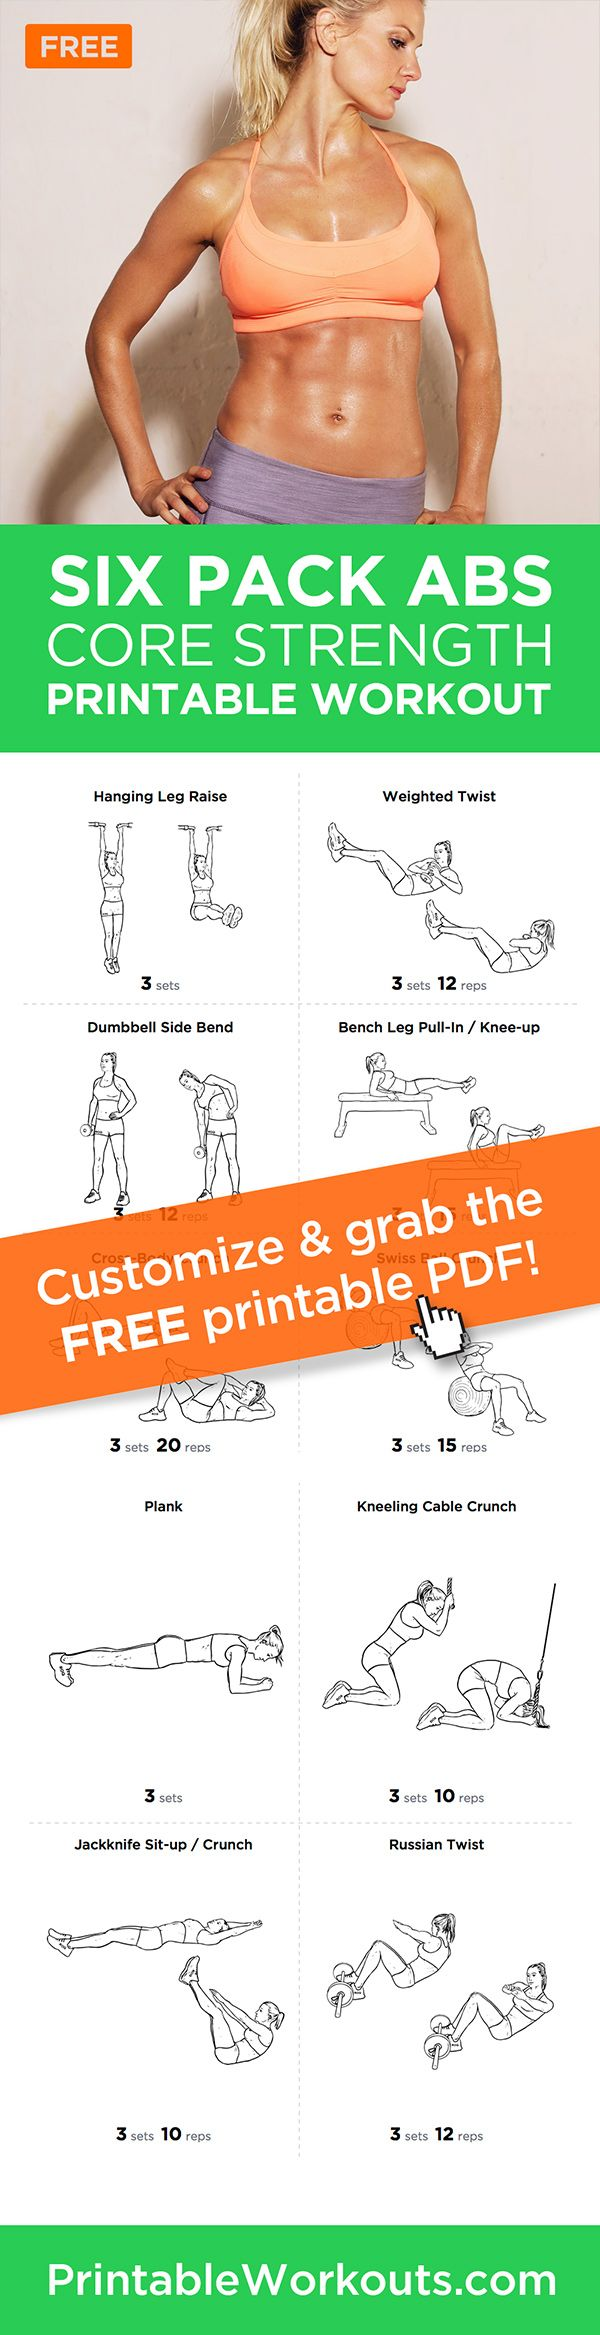 394 best Printable Workout-sheets images on Pinterest | Fitness ...